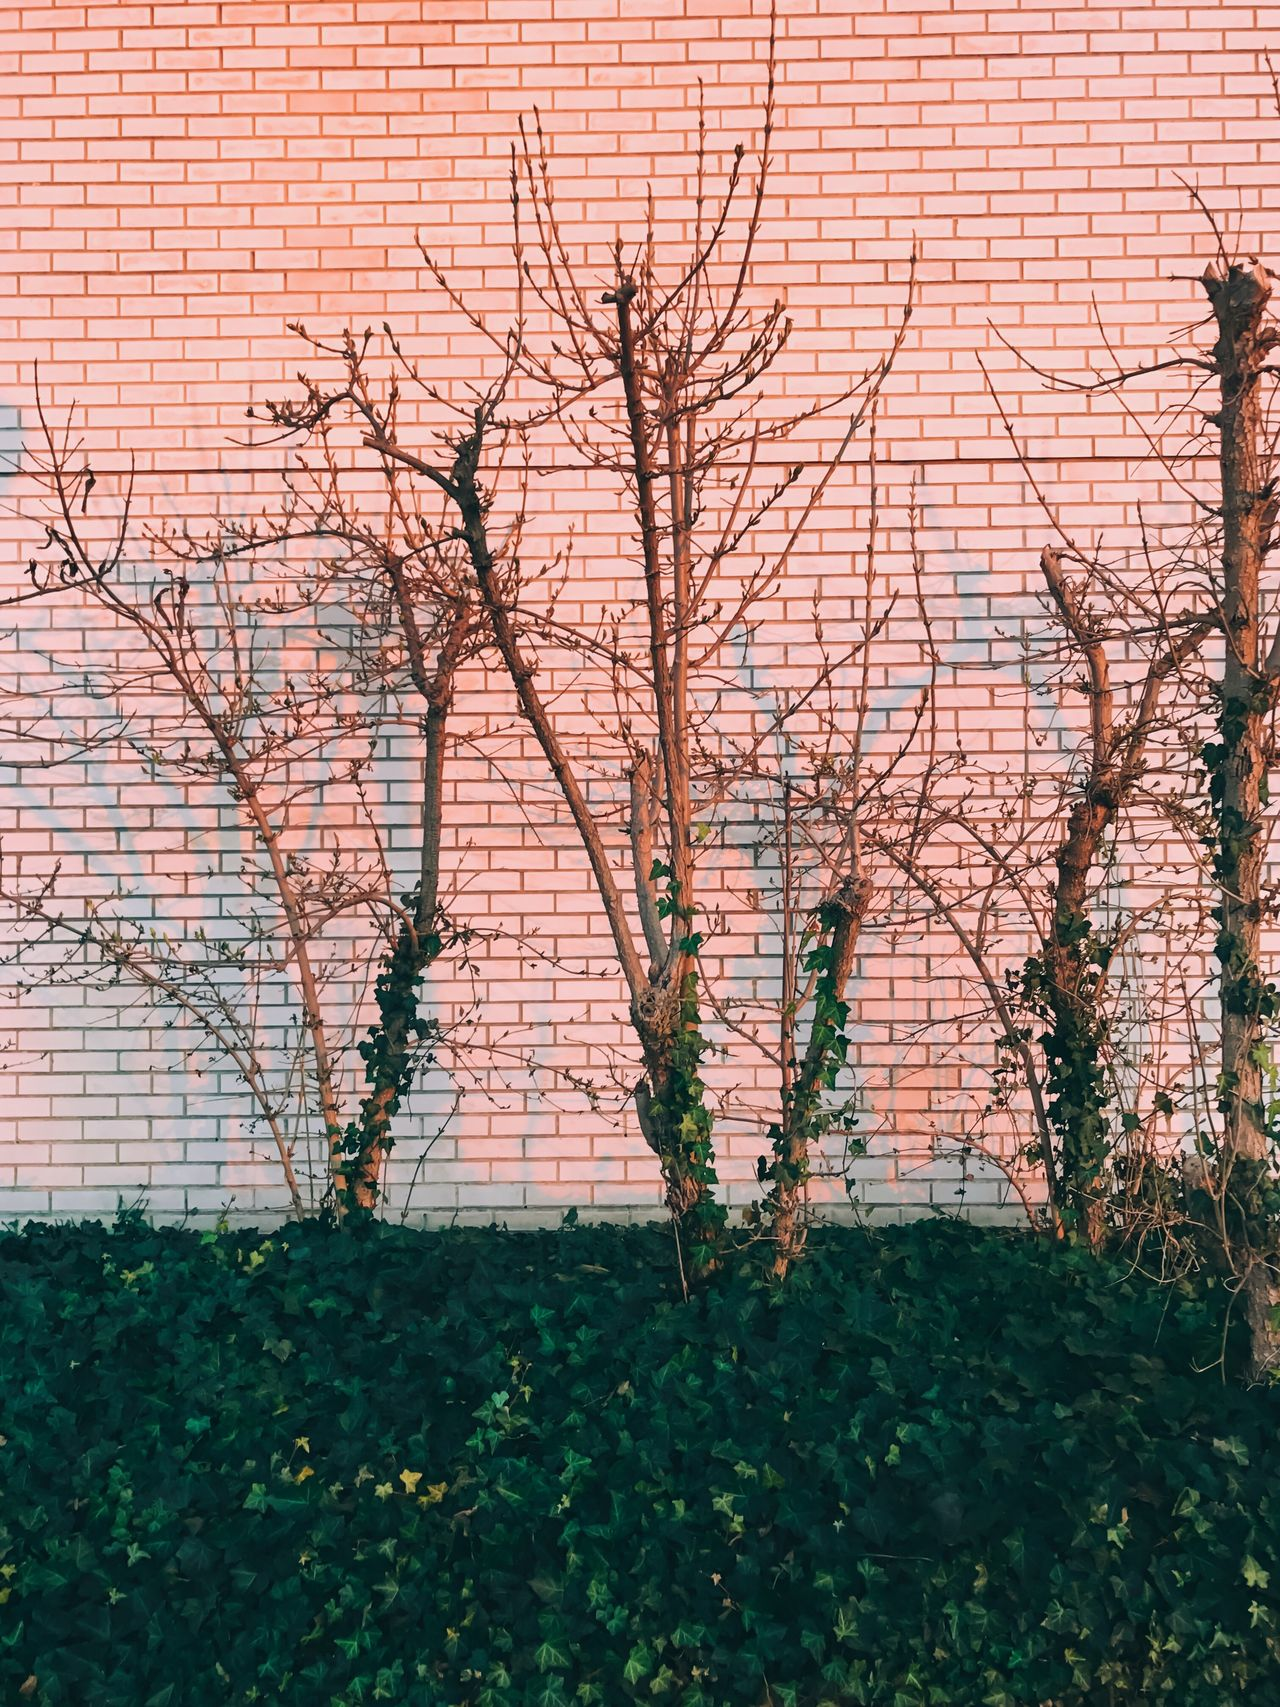 Tree Bare Tree Branch Nature Built Structure Growth Building Exterior Architecture Plant No People Outdoors Day Brick Wall Tranquility Beauty In Nature City Grass Sky